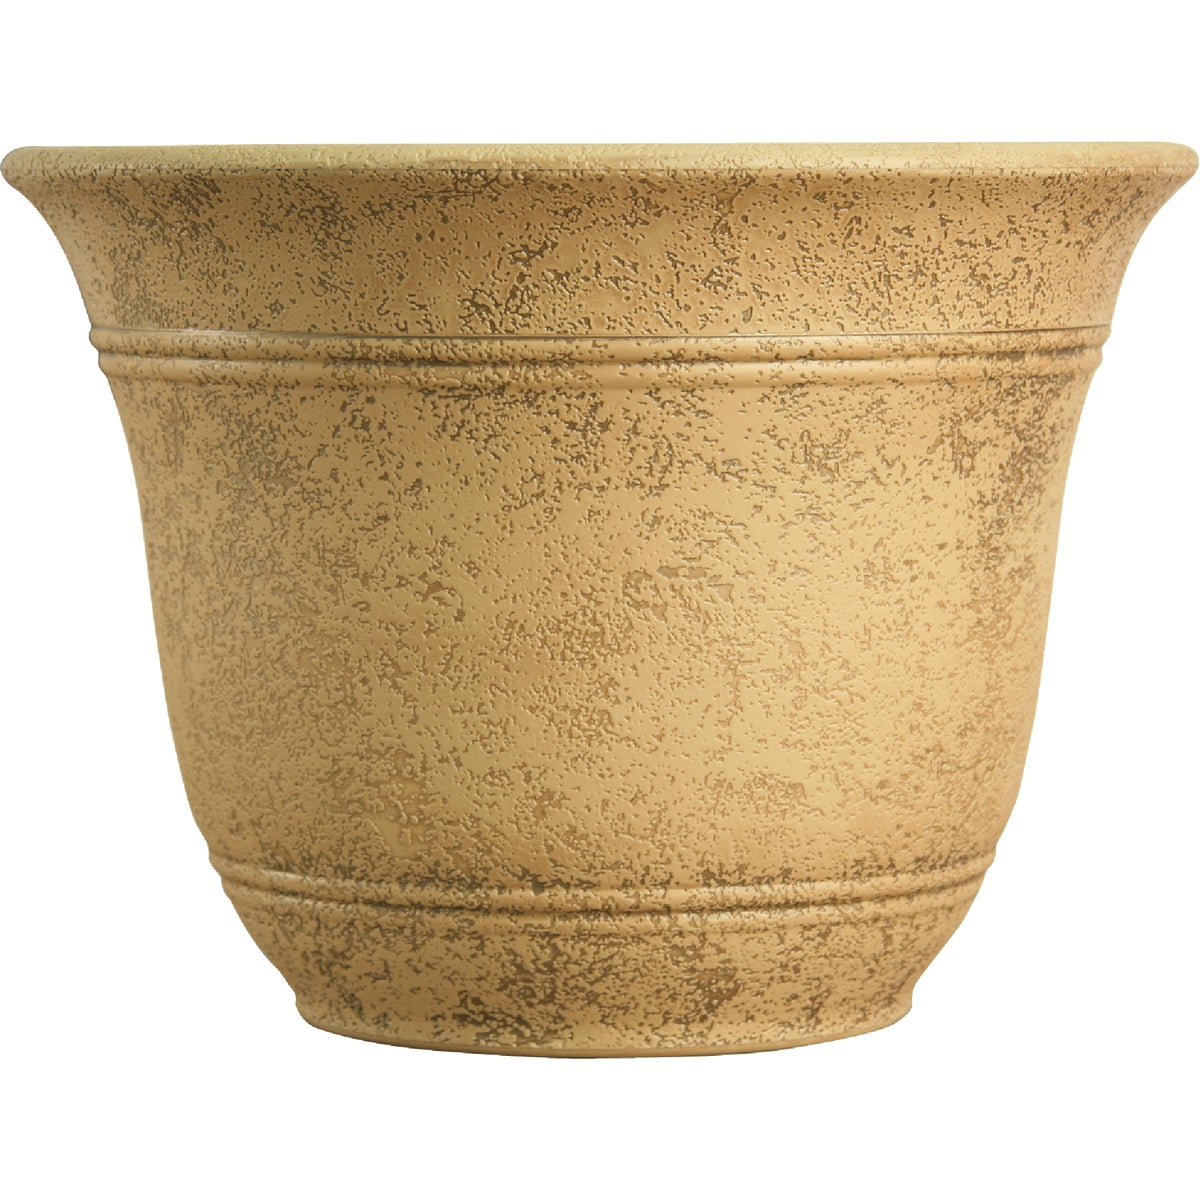 "10"" ARZ SAND SIERRA POT - SRA10001P09 by Myers Industries Inc"